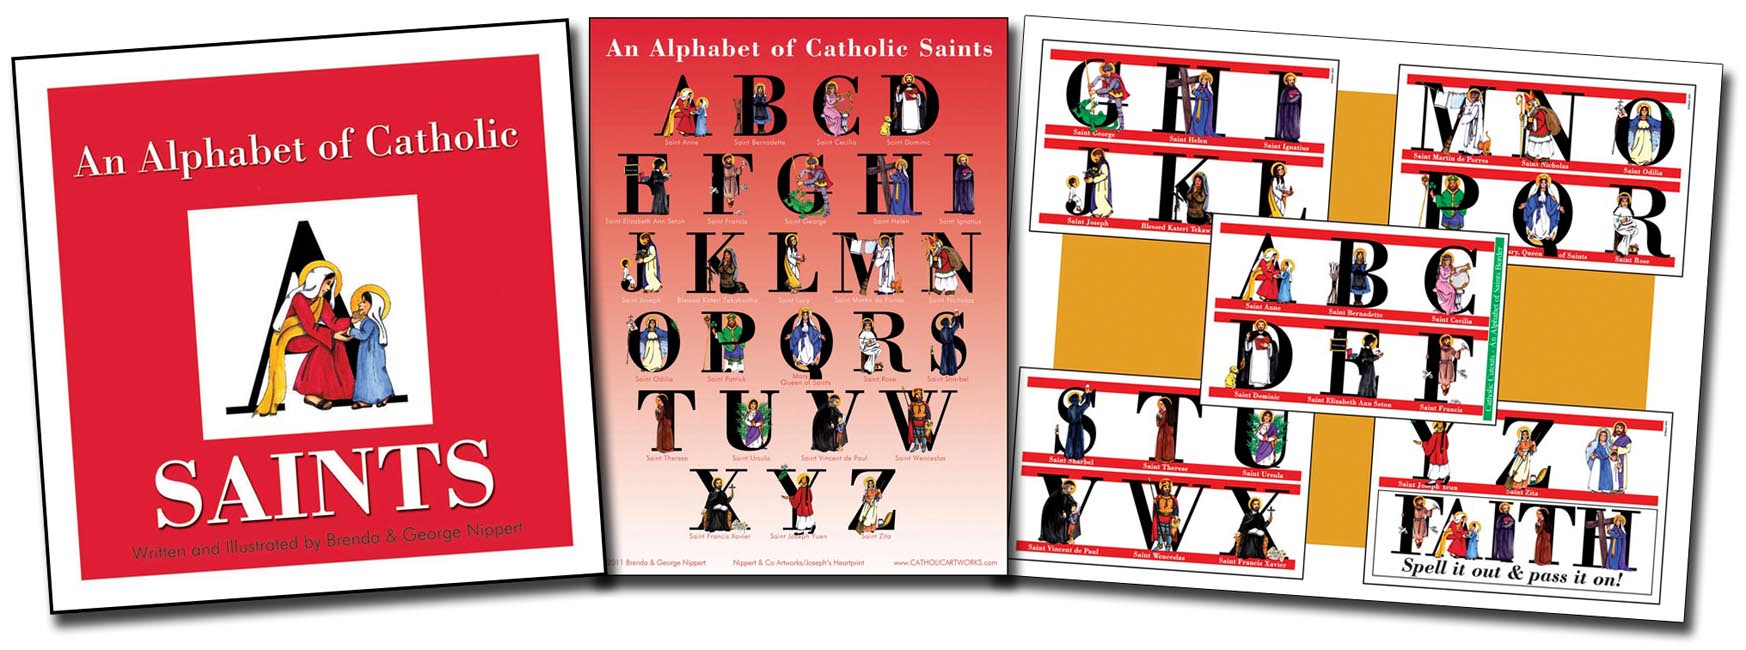 An Alphabet of Catholic Saints set